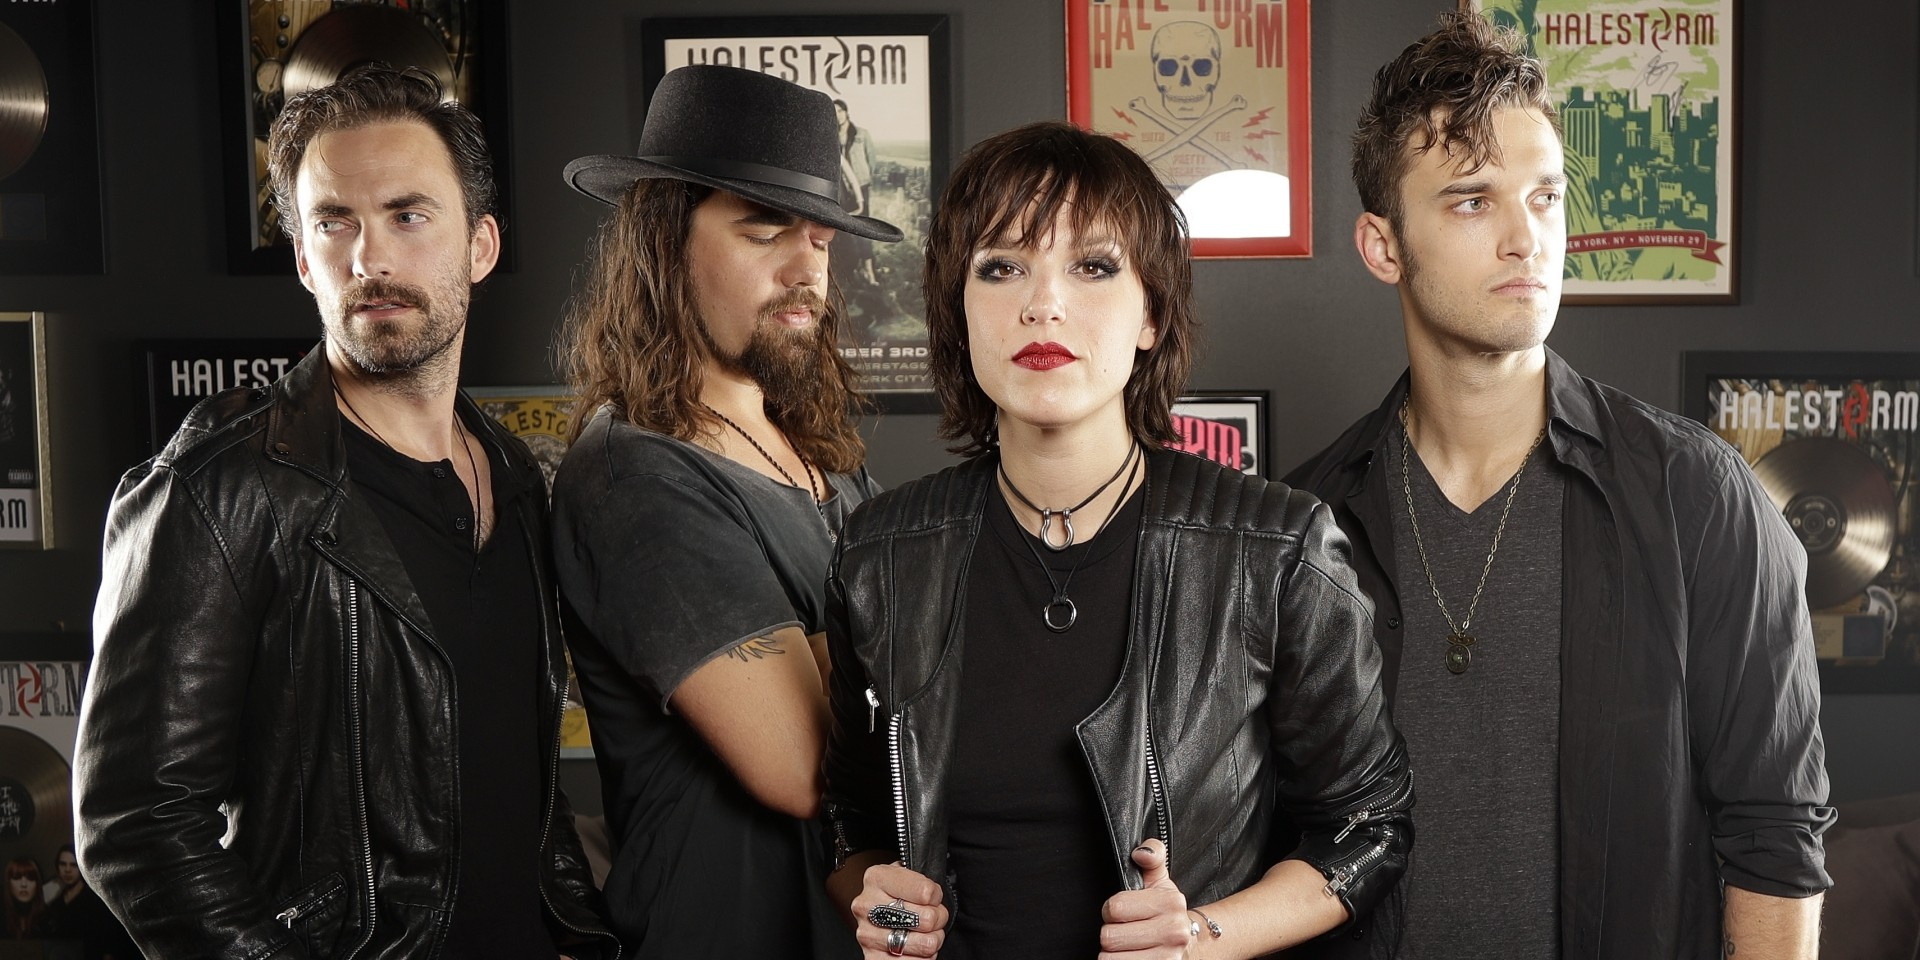 Halestorm to make debut performance in Malaysia this December